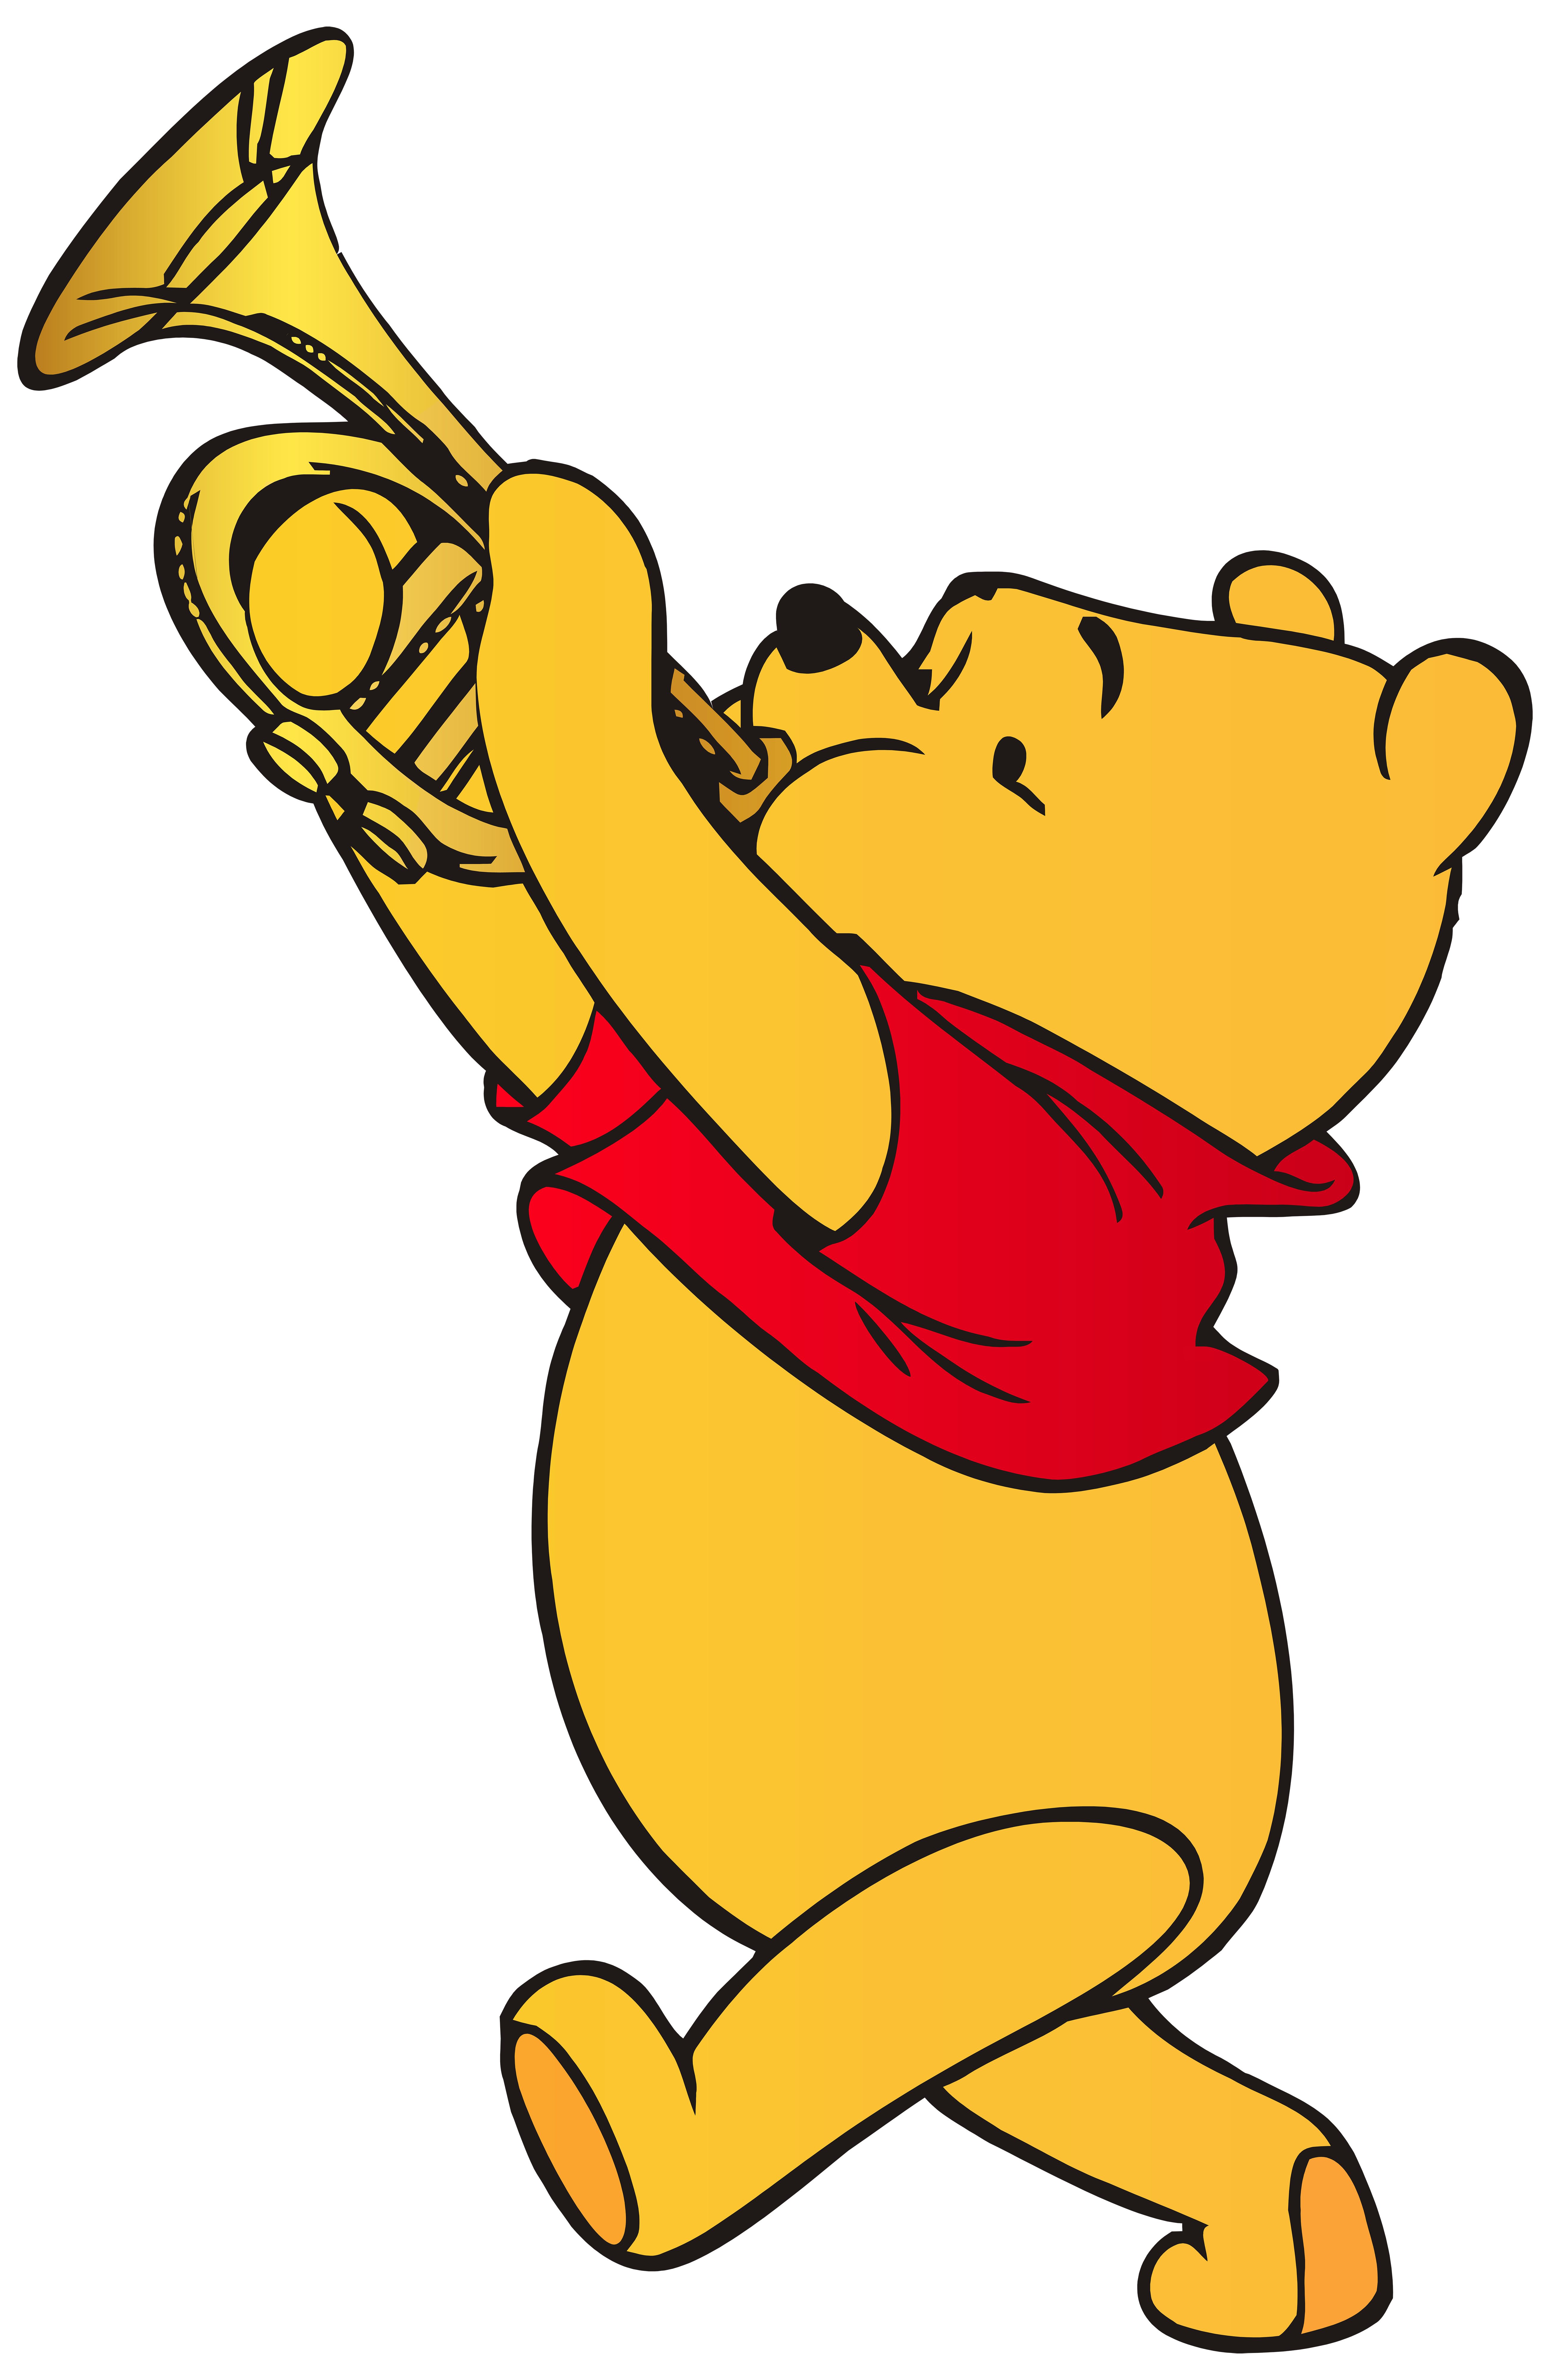 Winnie the pooh playing trumpet clip art web clipart